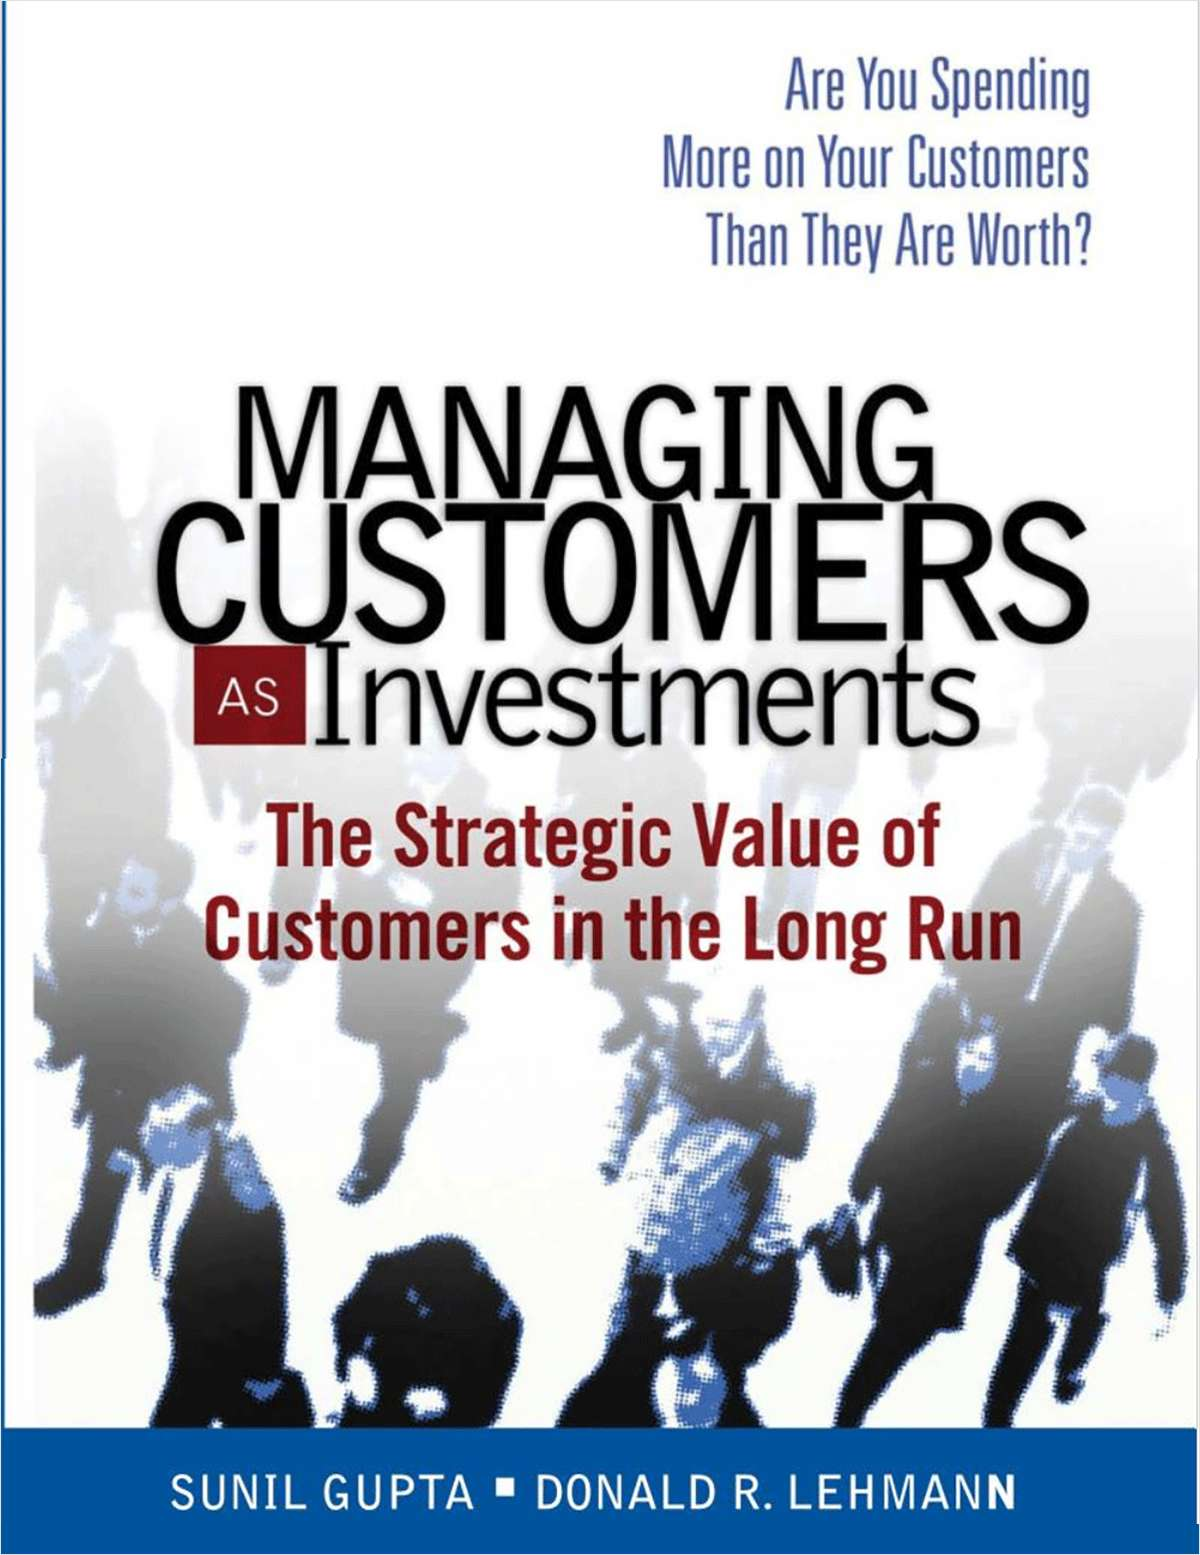 Managing Customers as Investments Research Kit - Includes a Free $8.50 Book Summary